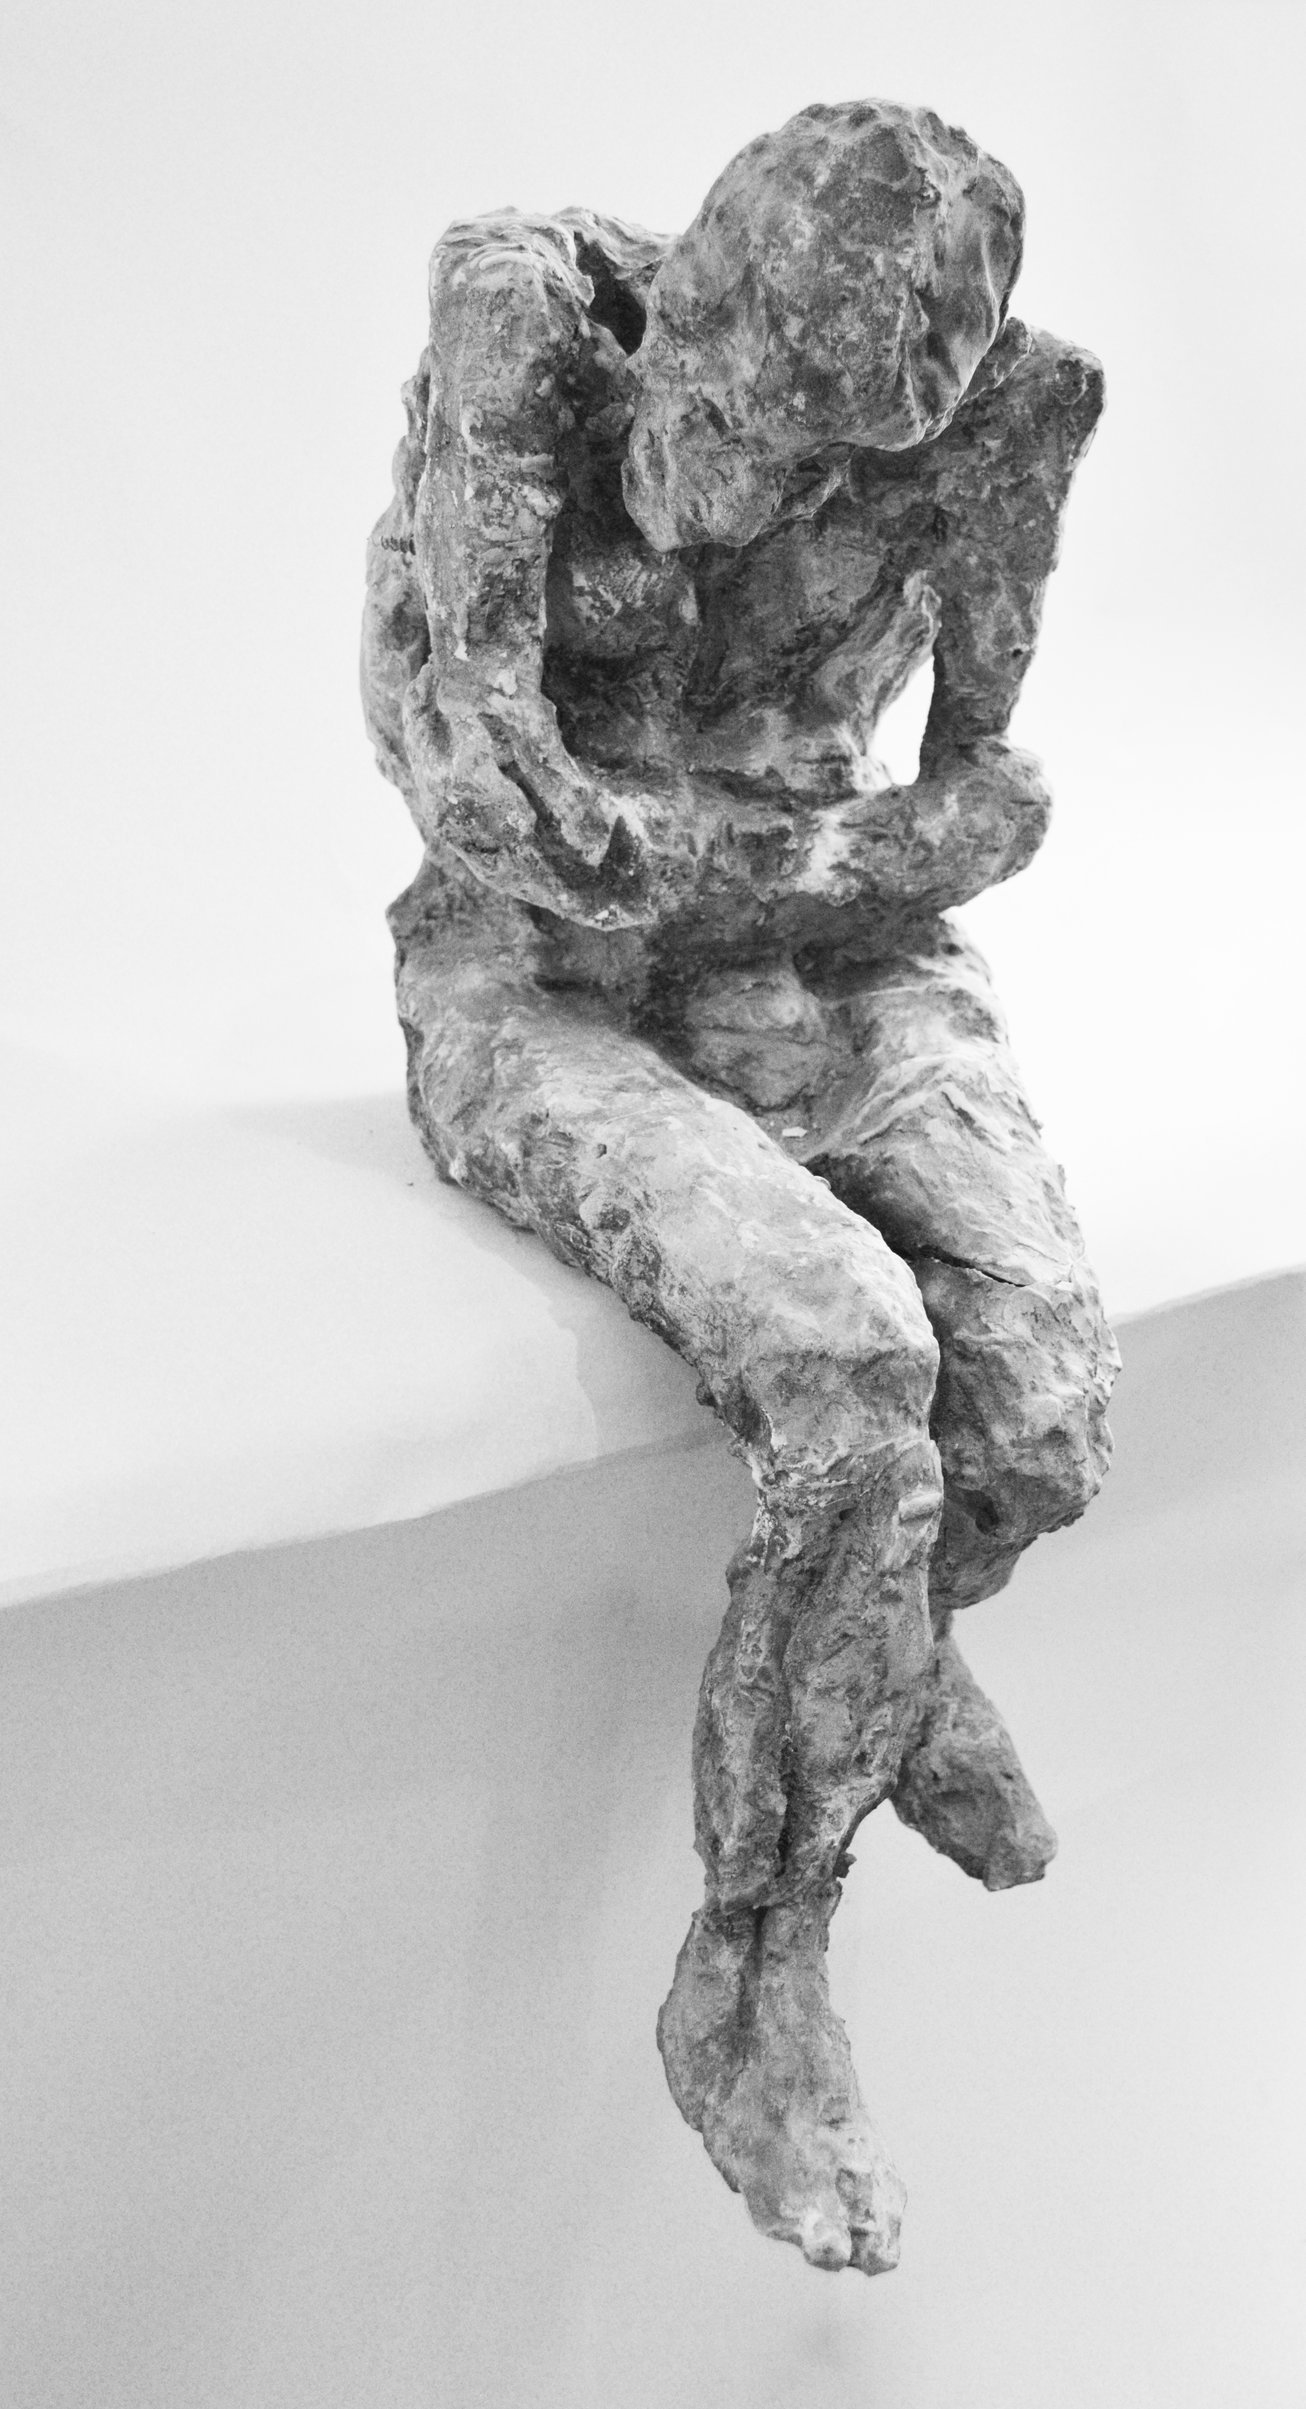 sitting sculpture I3i.jpg.jpg